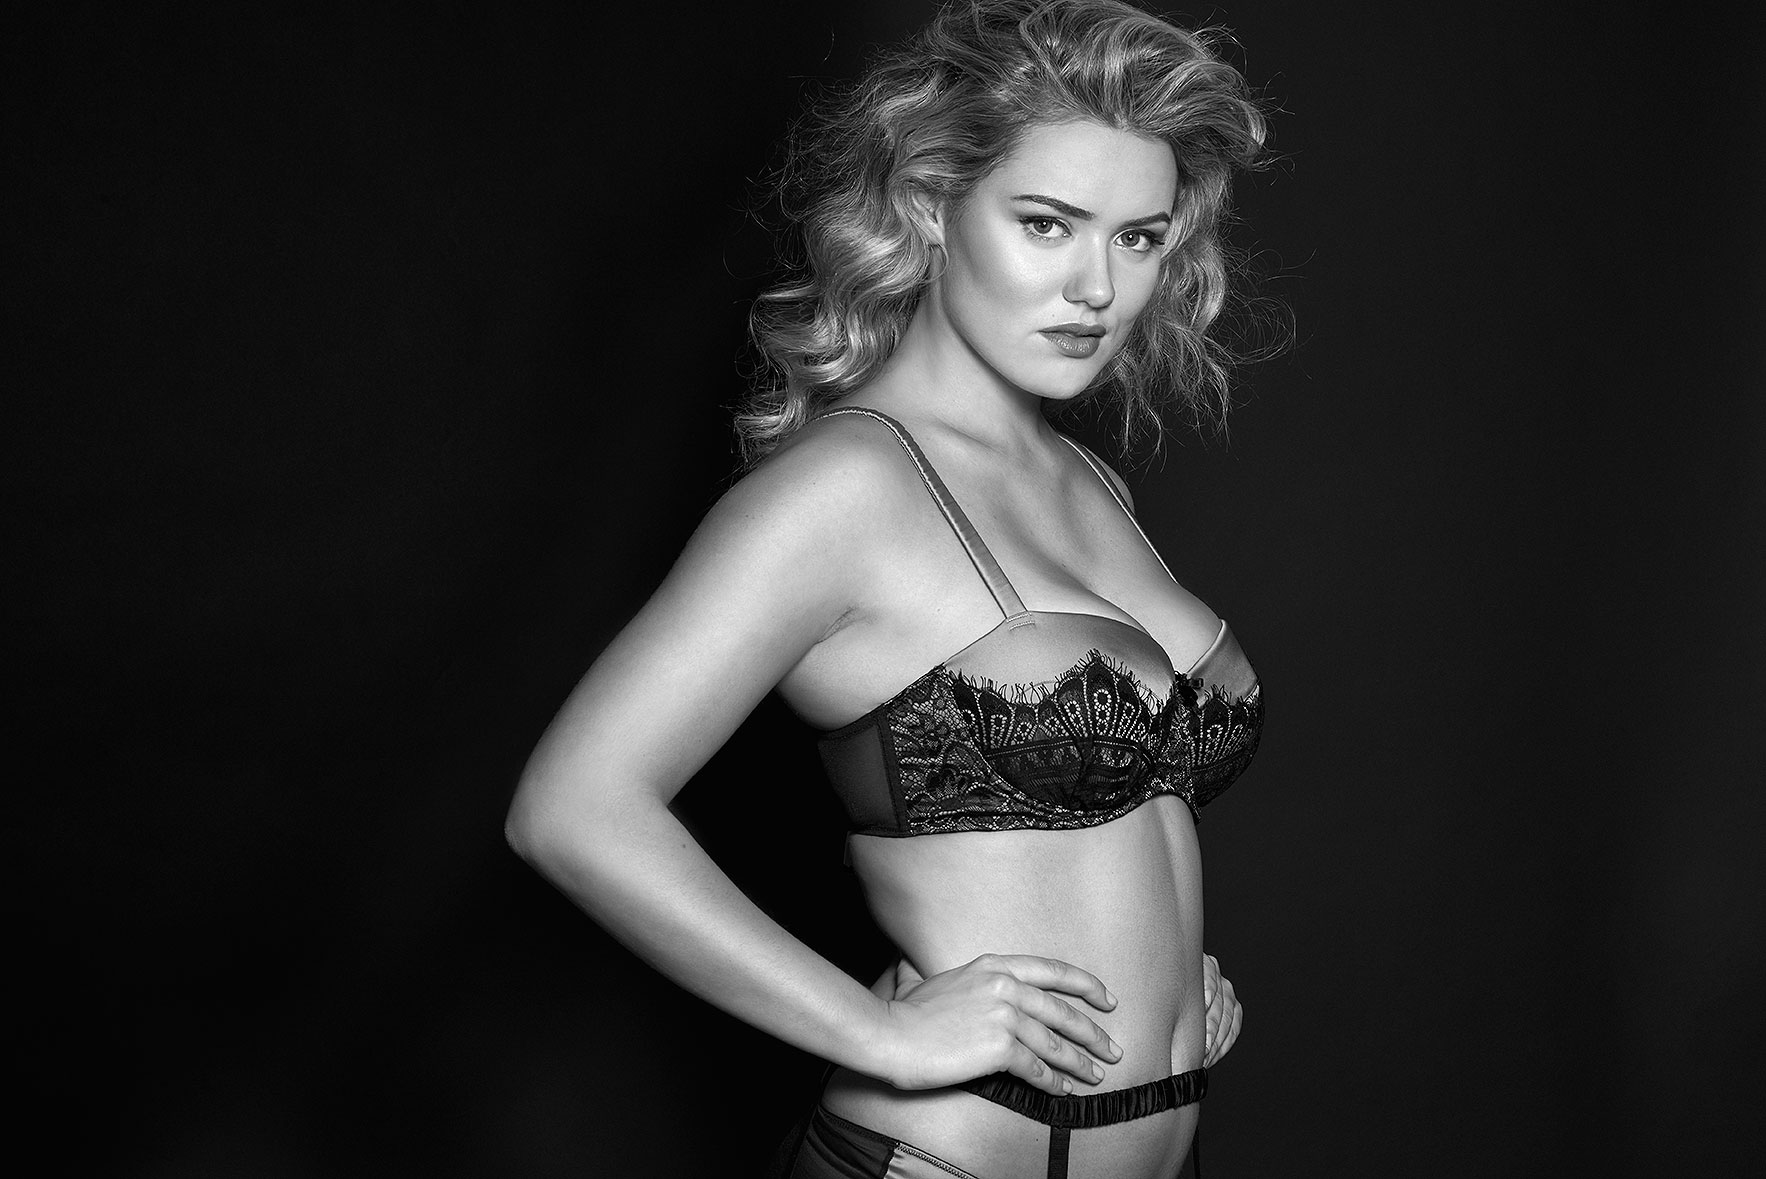 Lingerie-la-femme-larger-cup-lingerie-plus-size-model-kate-m-milk-models-playful-promises-04